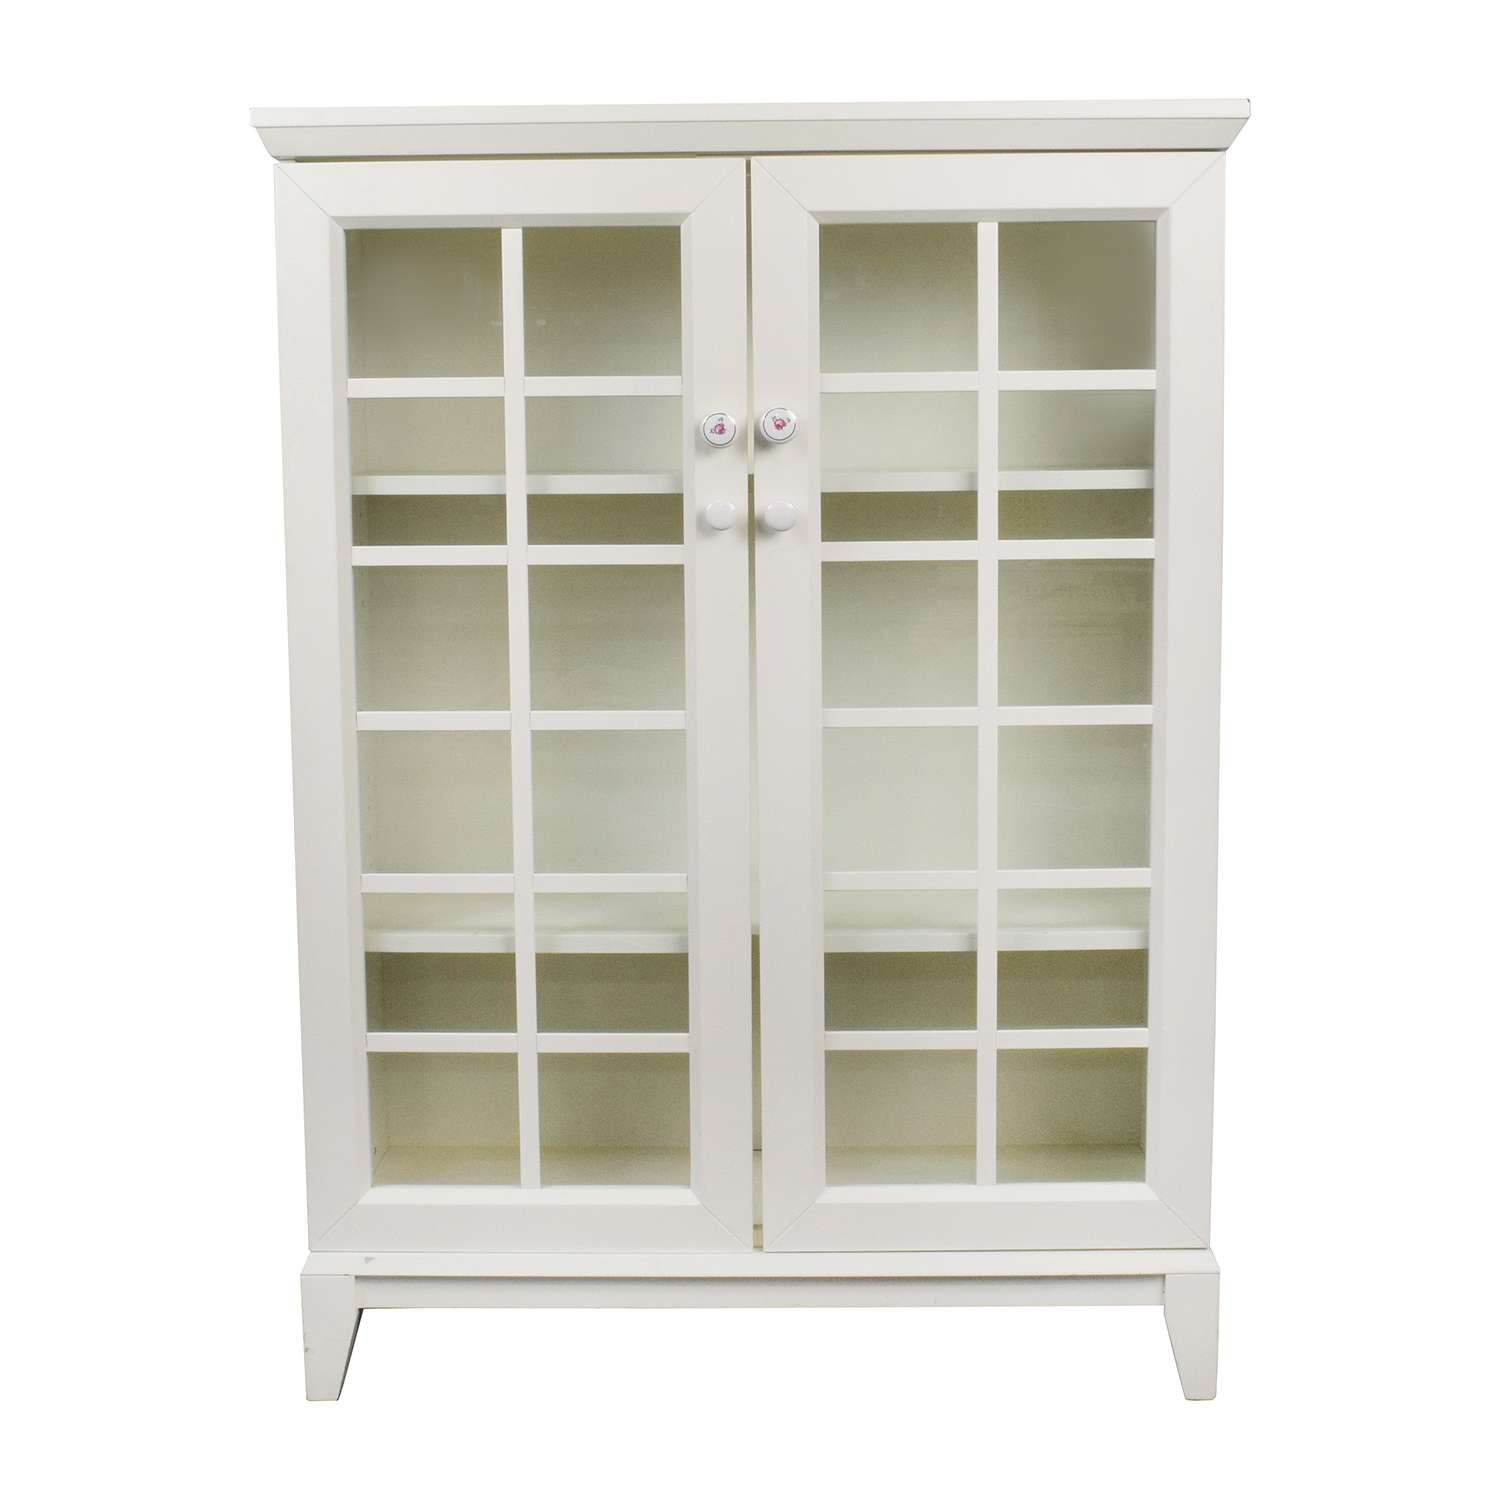 48% Off – Crate And Barrel Crate And Barrel White China Cabinet Inside Crate And Barrel Sideboards (View 1 of 20)